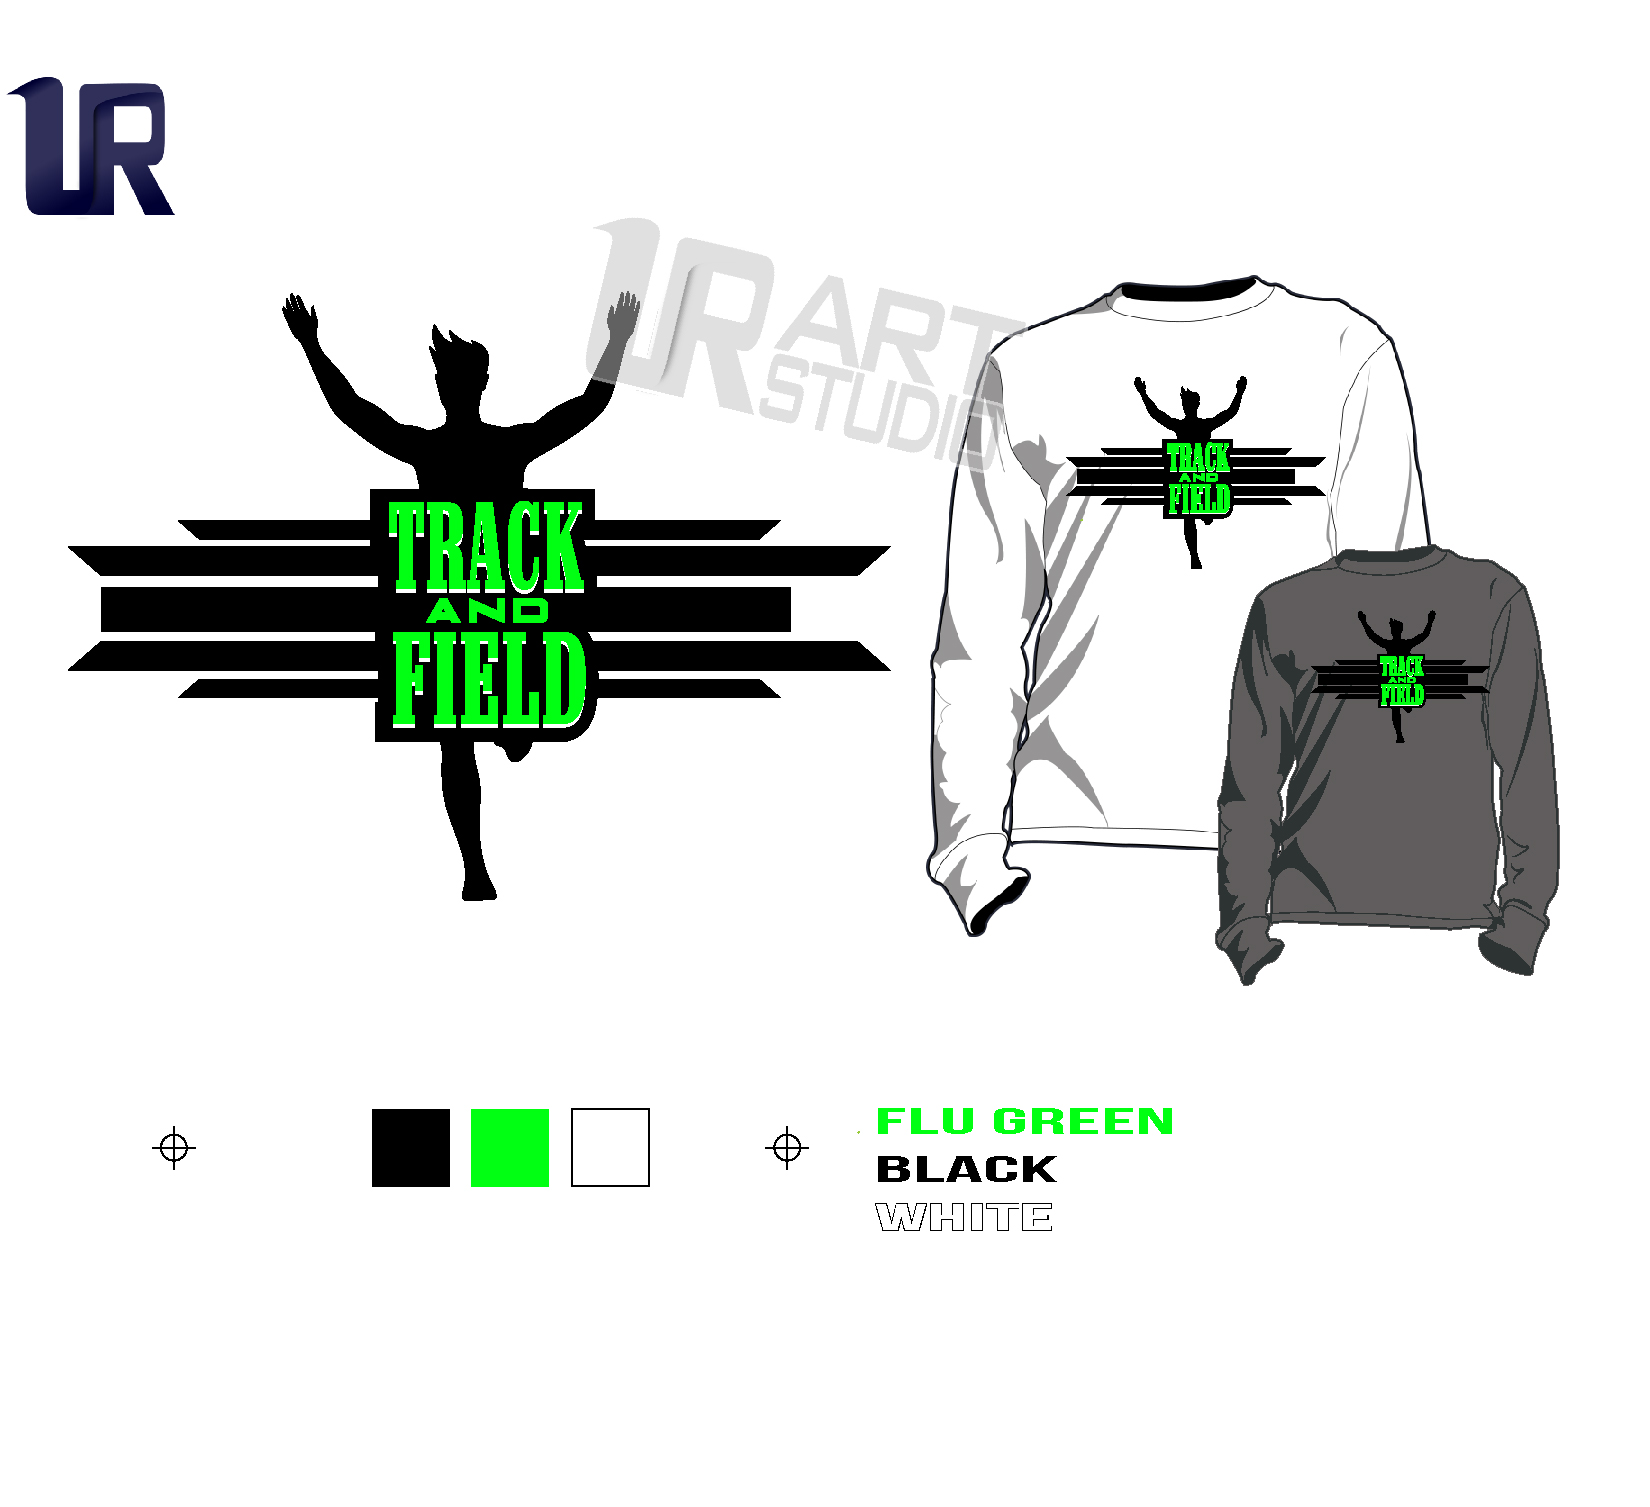 PRINT 2018 TRACK AND FIELD Tshirt vector design separated 3 color